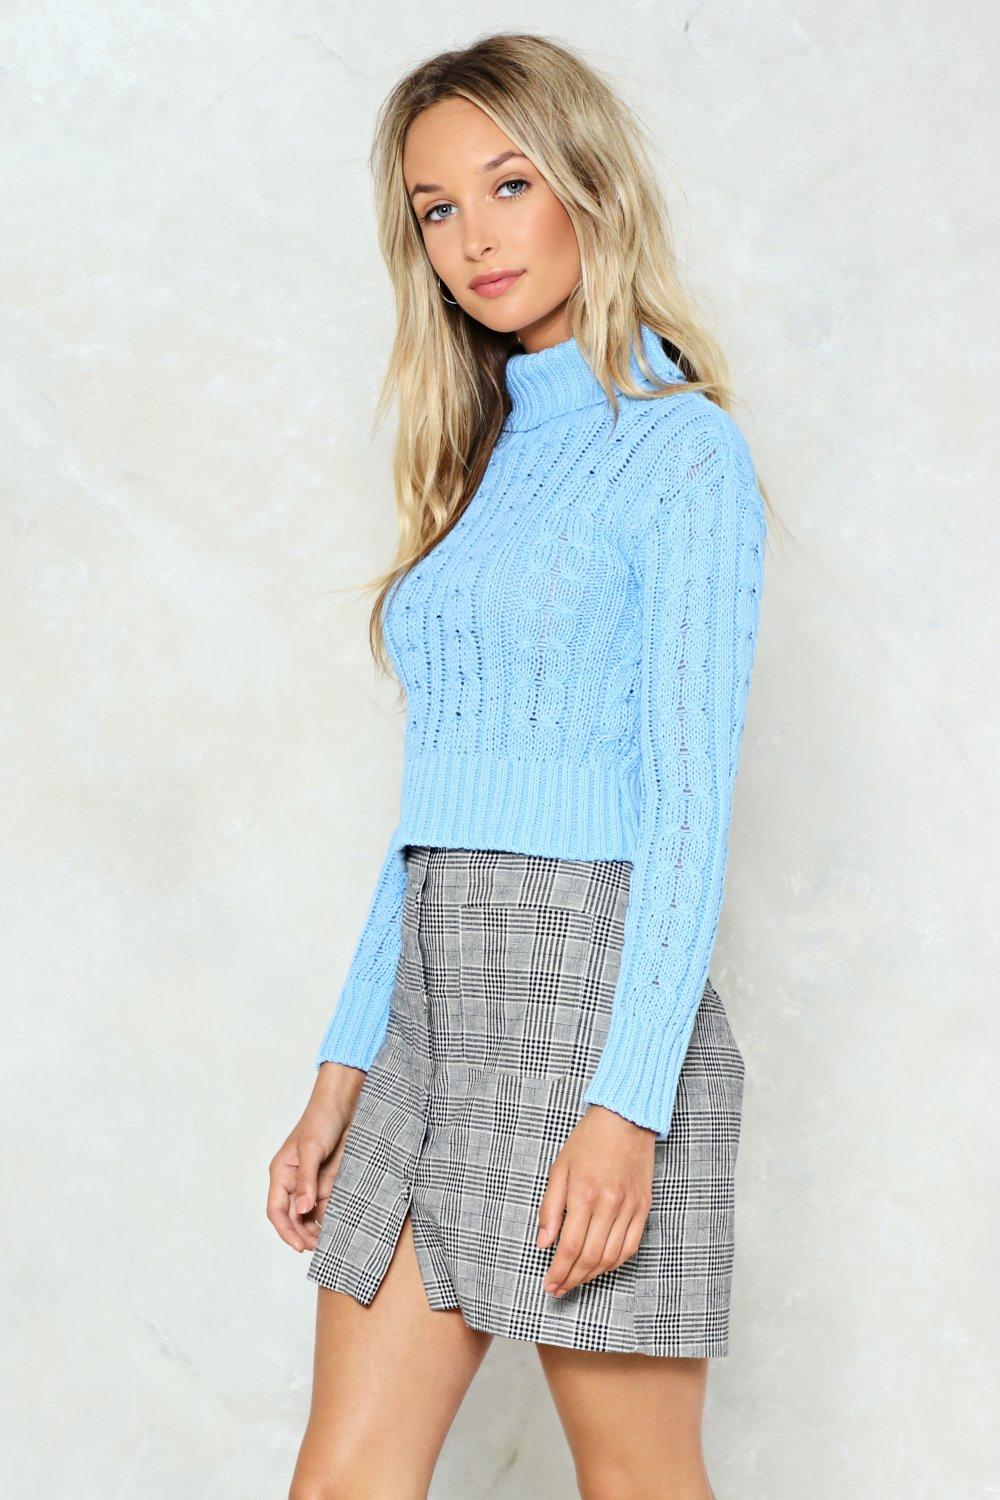 Knits My Life Cropped Sweater Shop Clothes At Nasty Gal